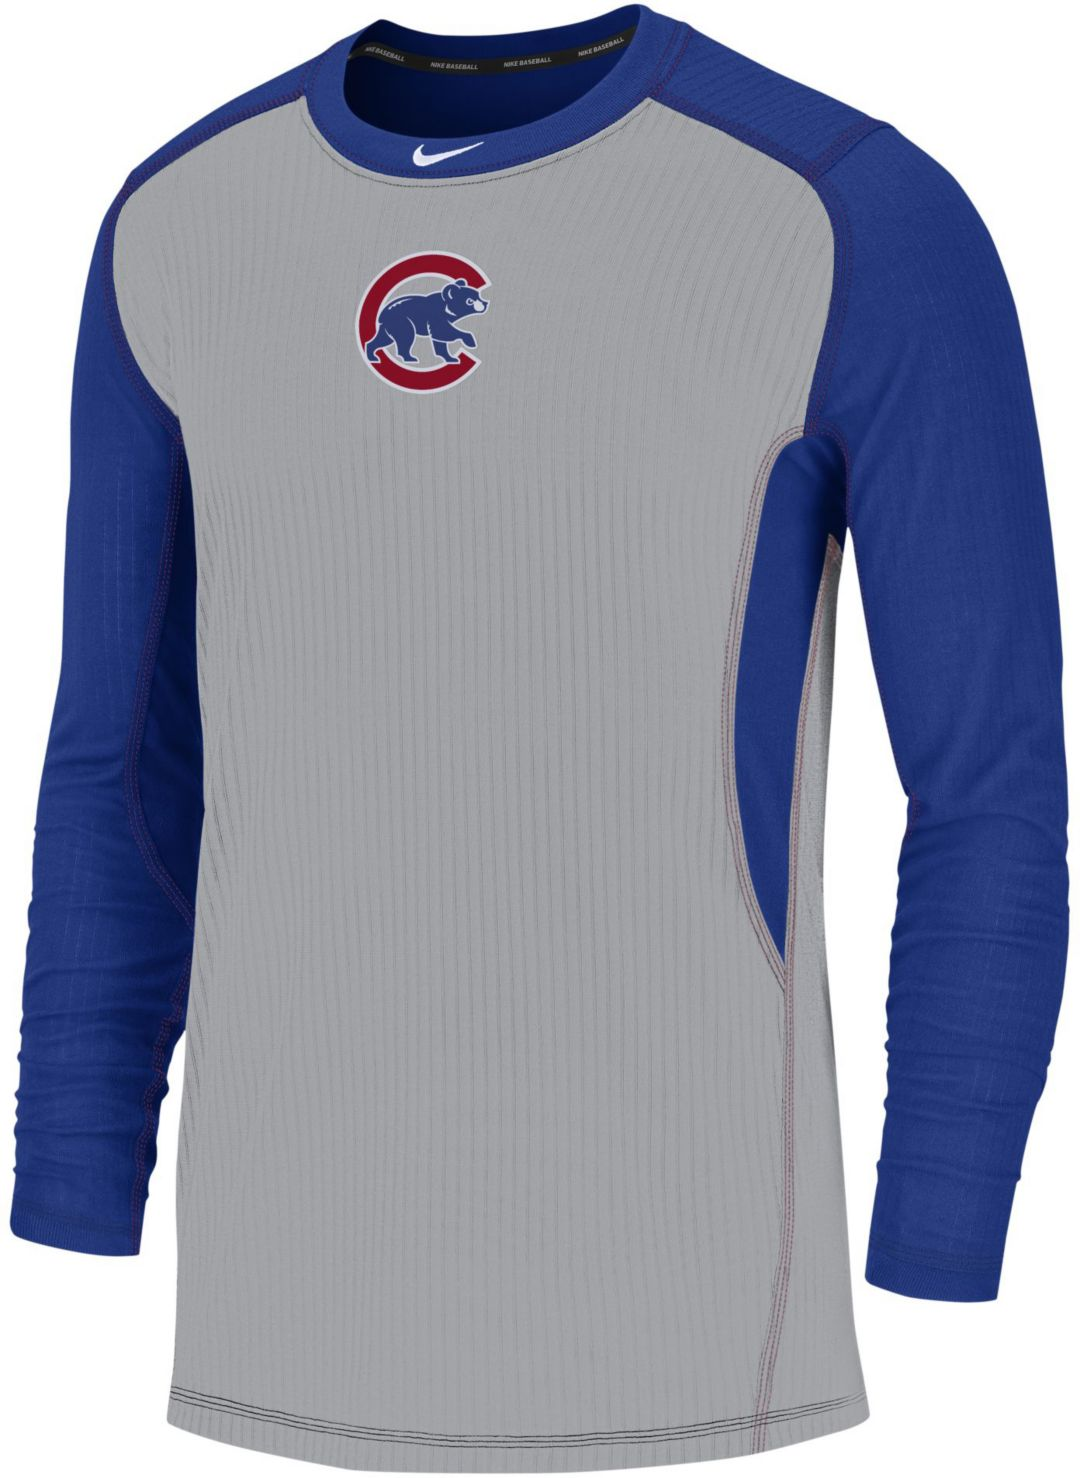 new arrivals 1e759 911c3 Nike Men's Chicago Cubs Authentic Collection Dri-FIT Long Sleeve Top